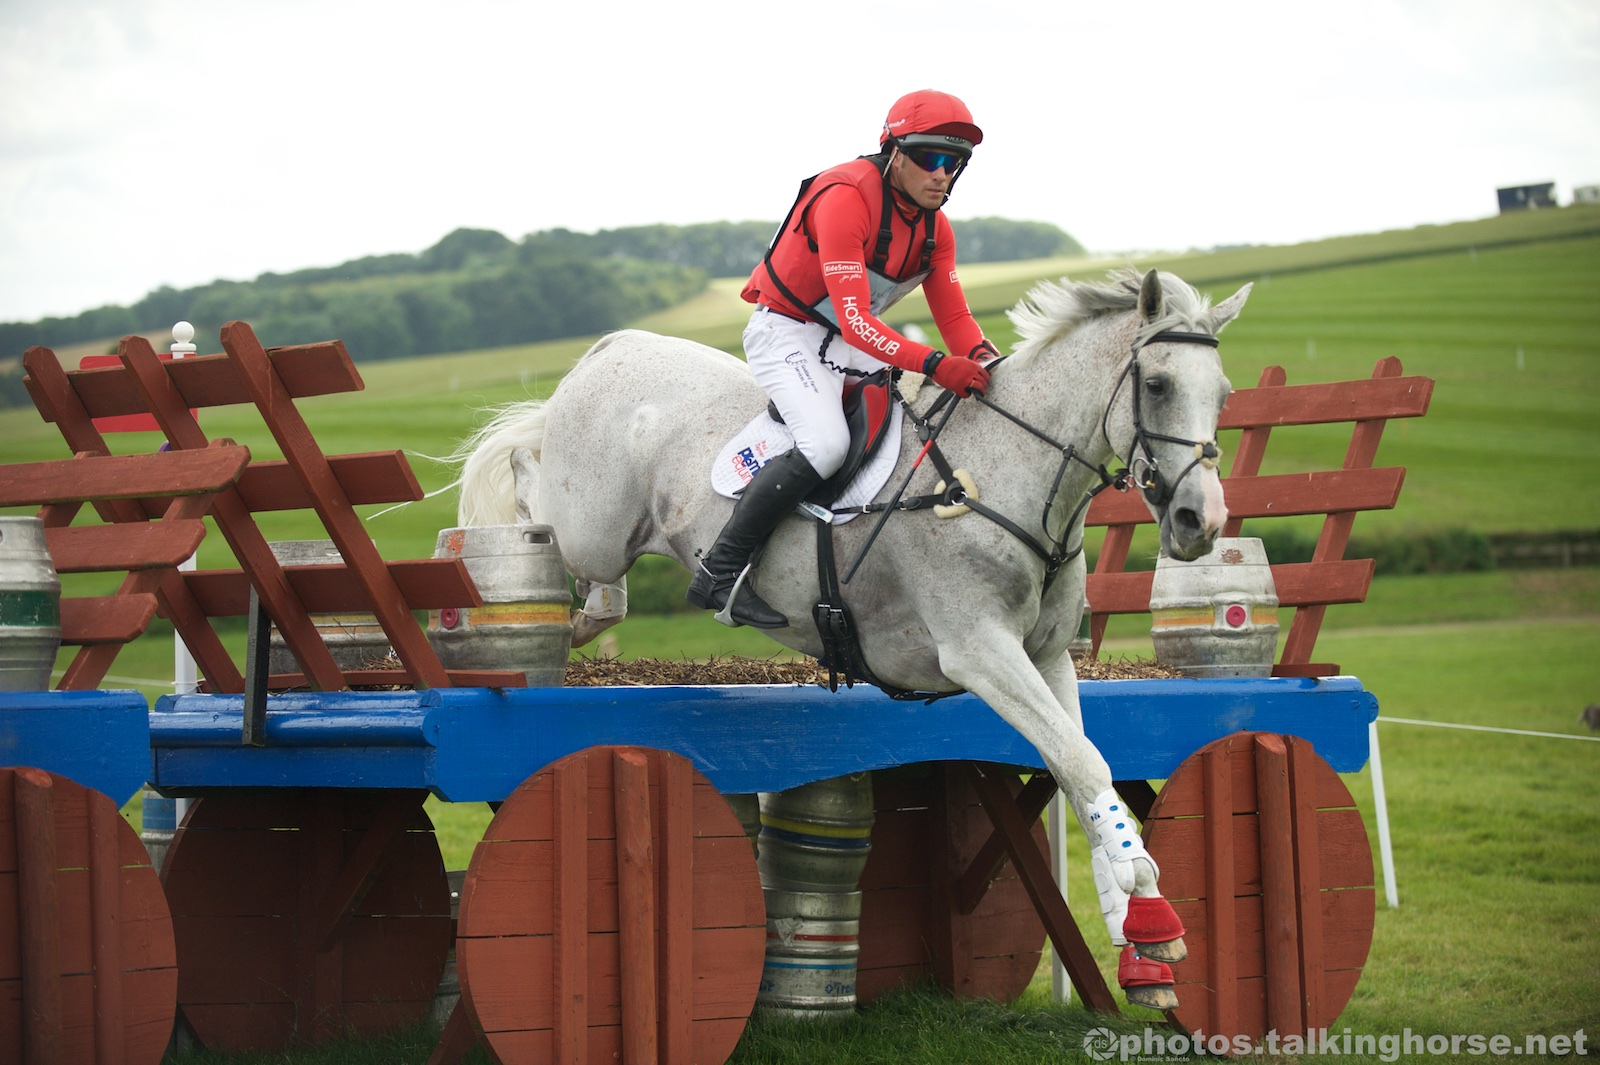 Paul Tapner & Kilronan - 4th In The Main CIC*** Class